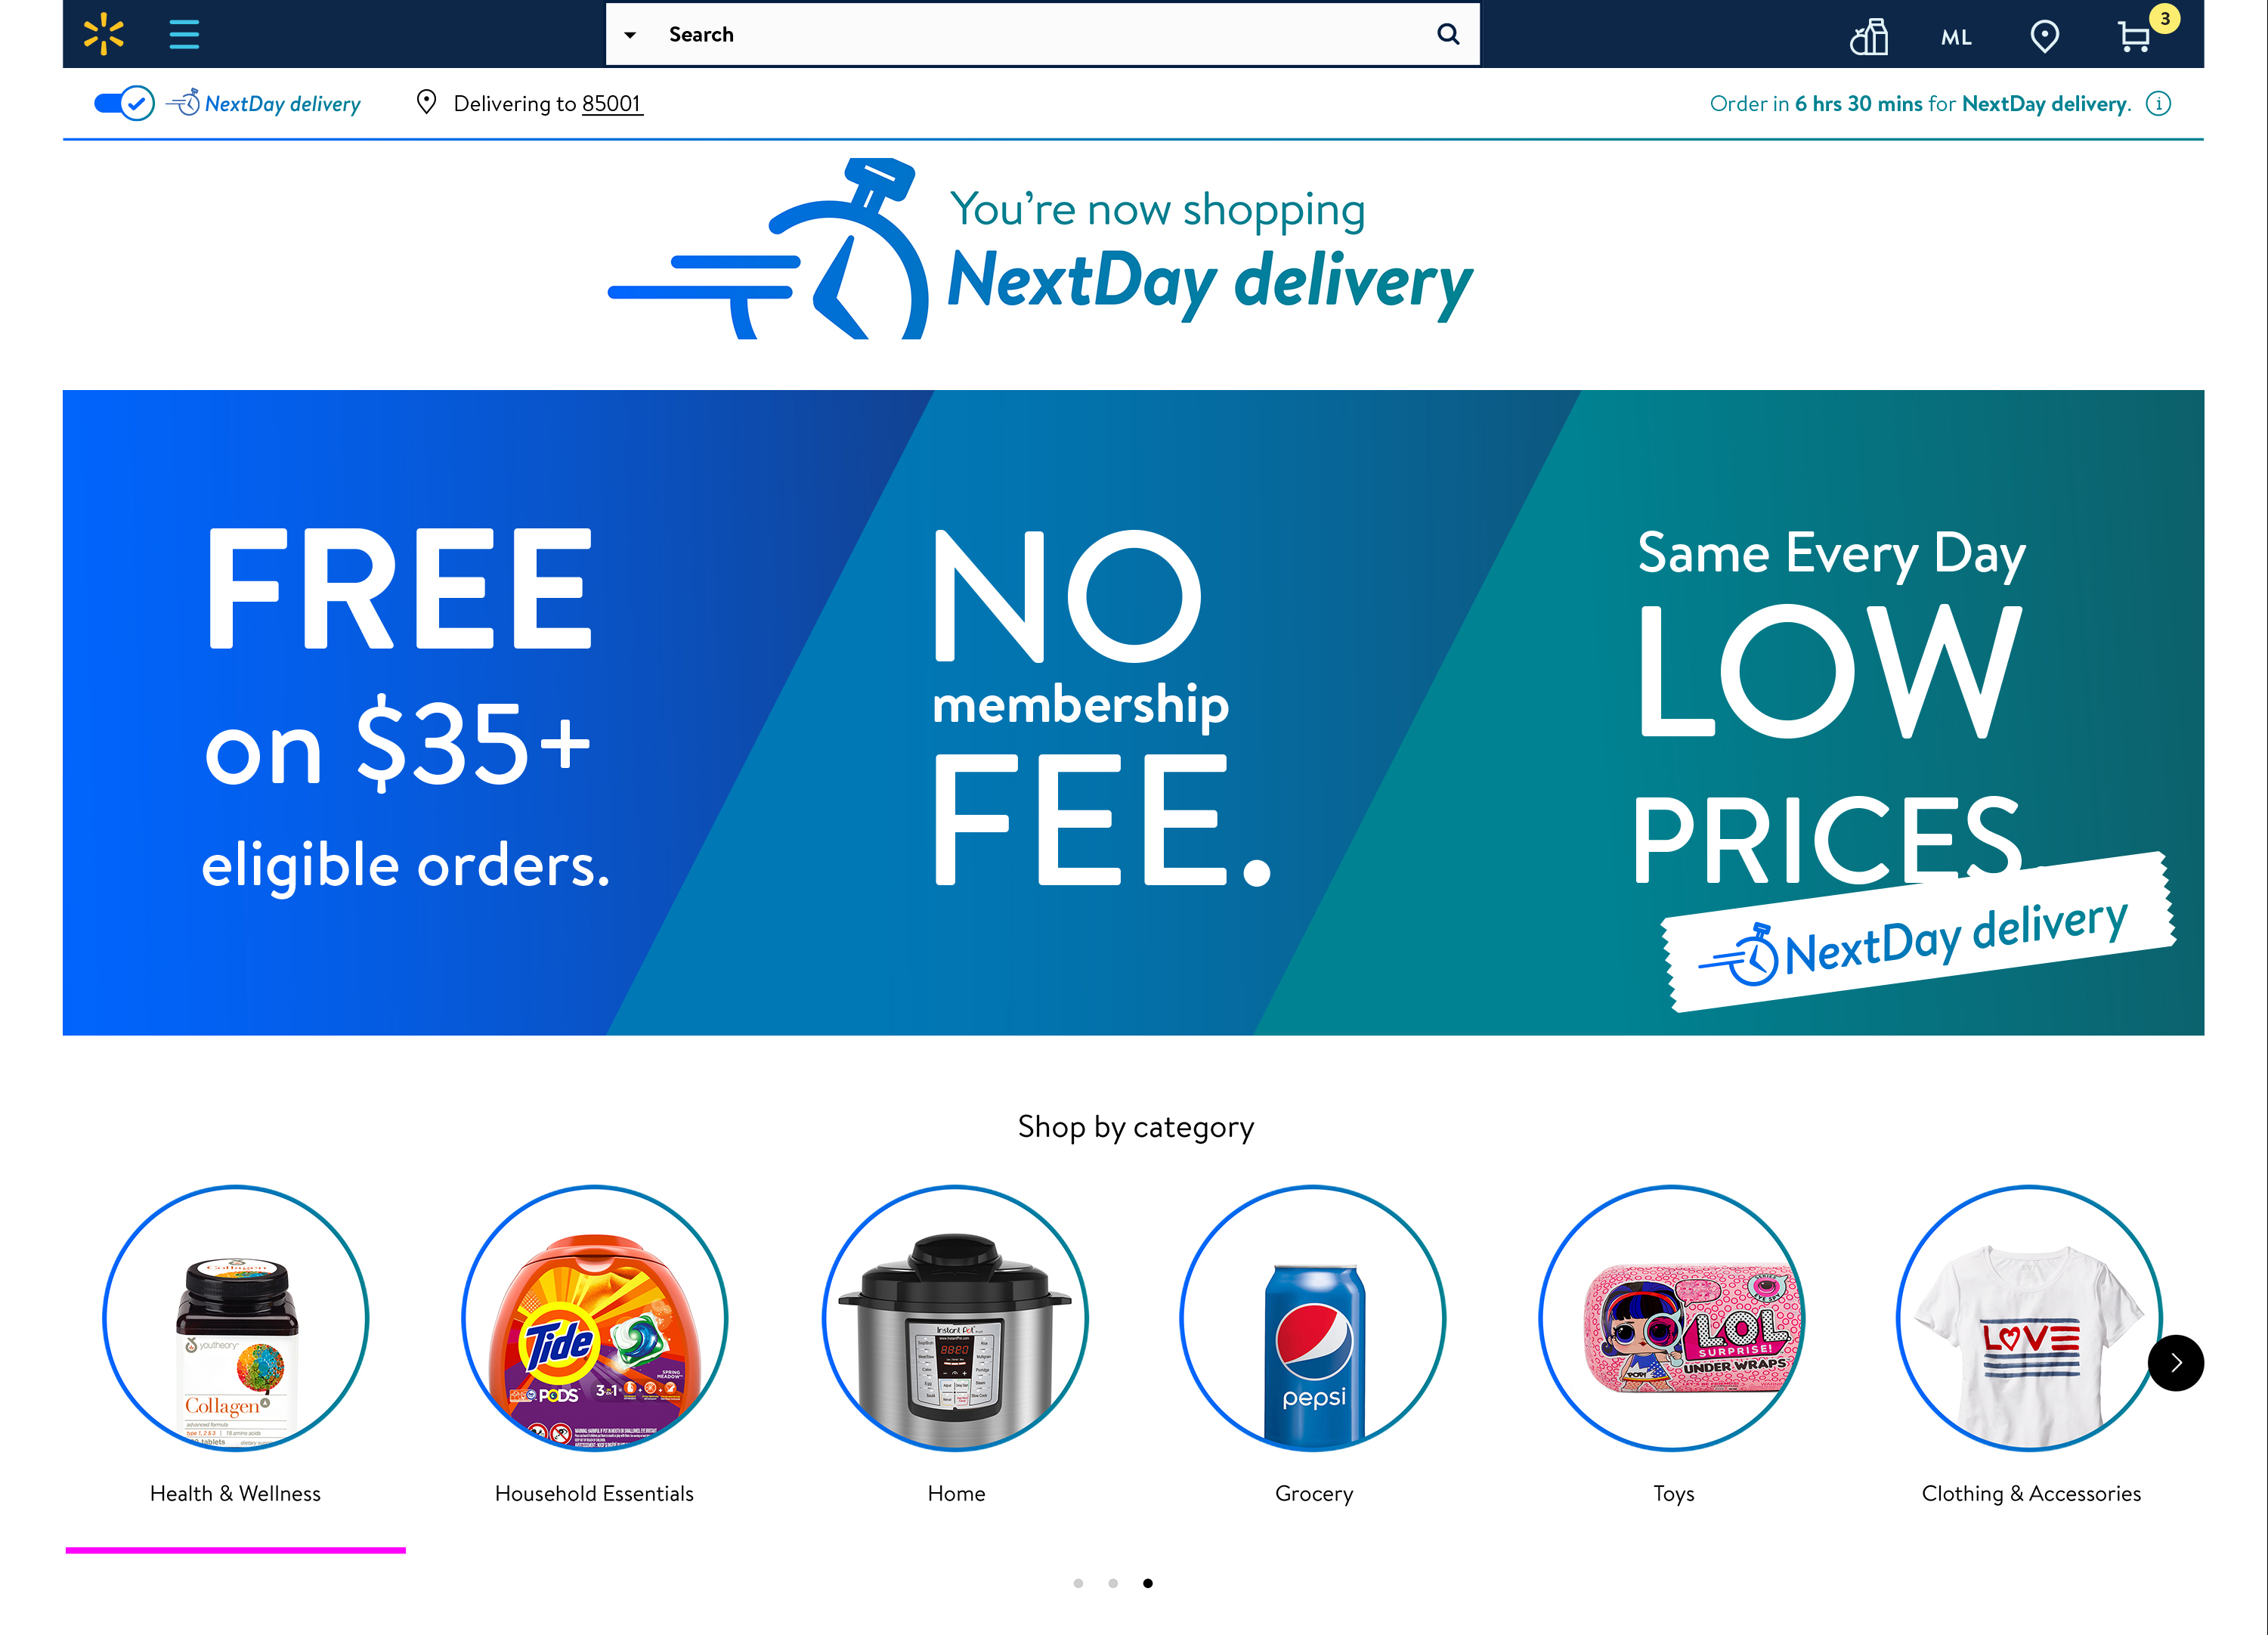 nextday-delivery-landing-page-1